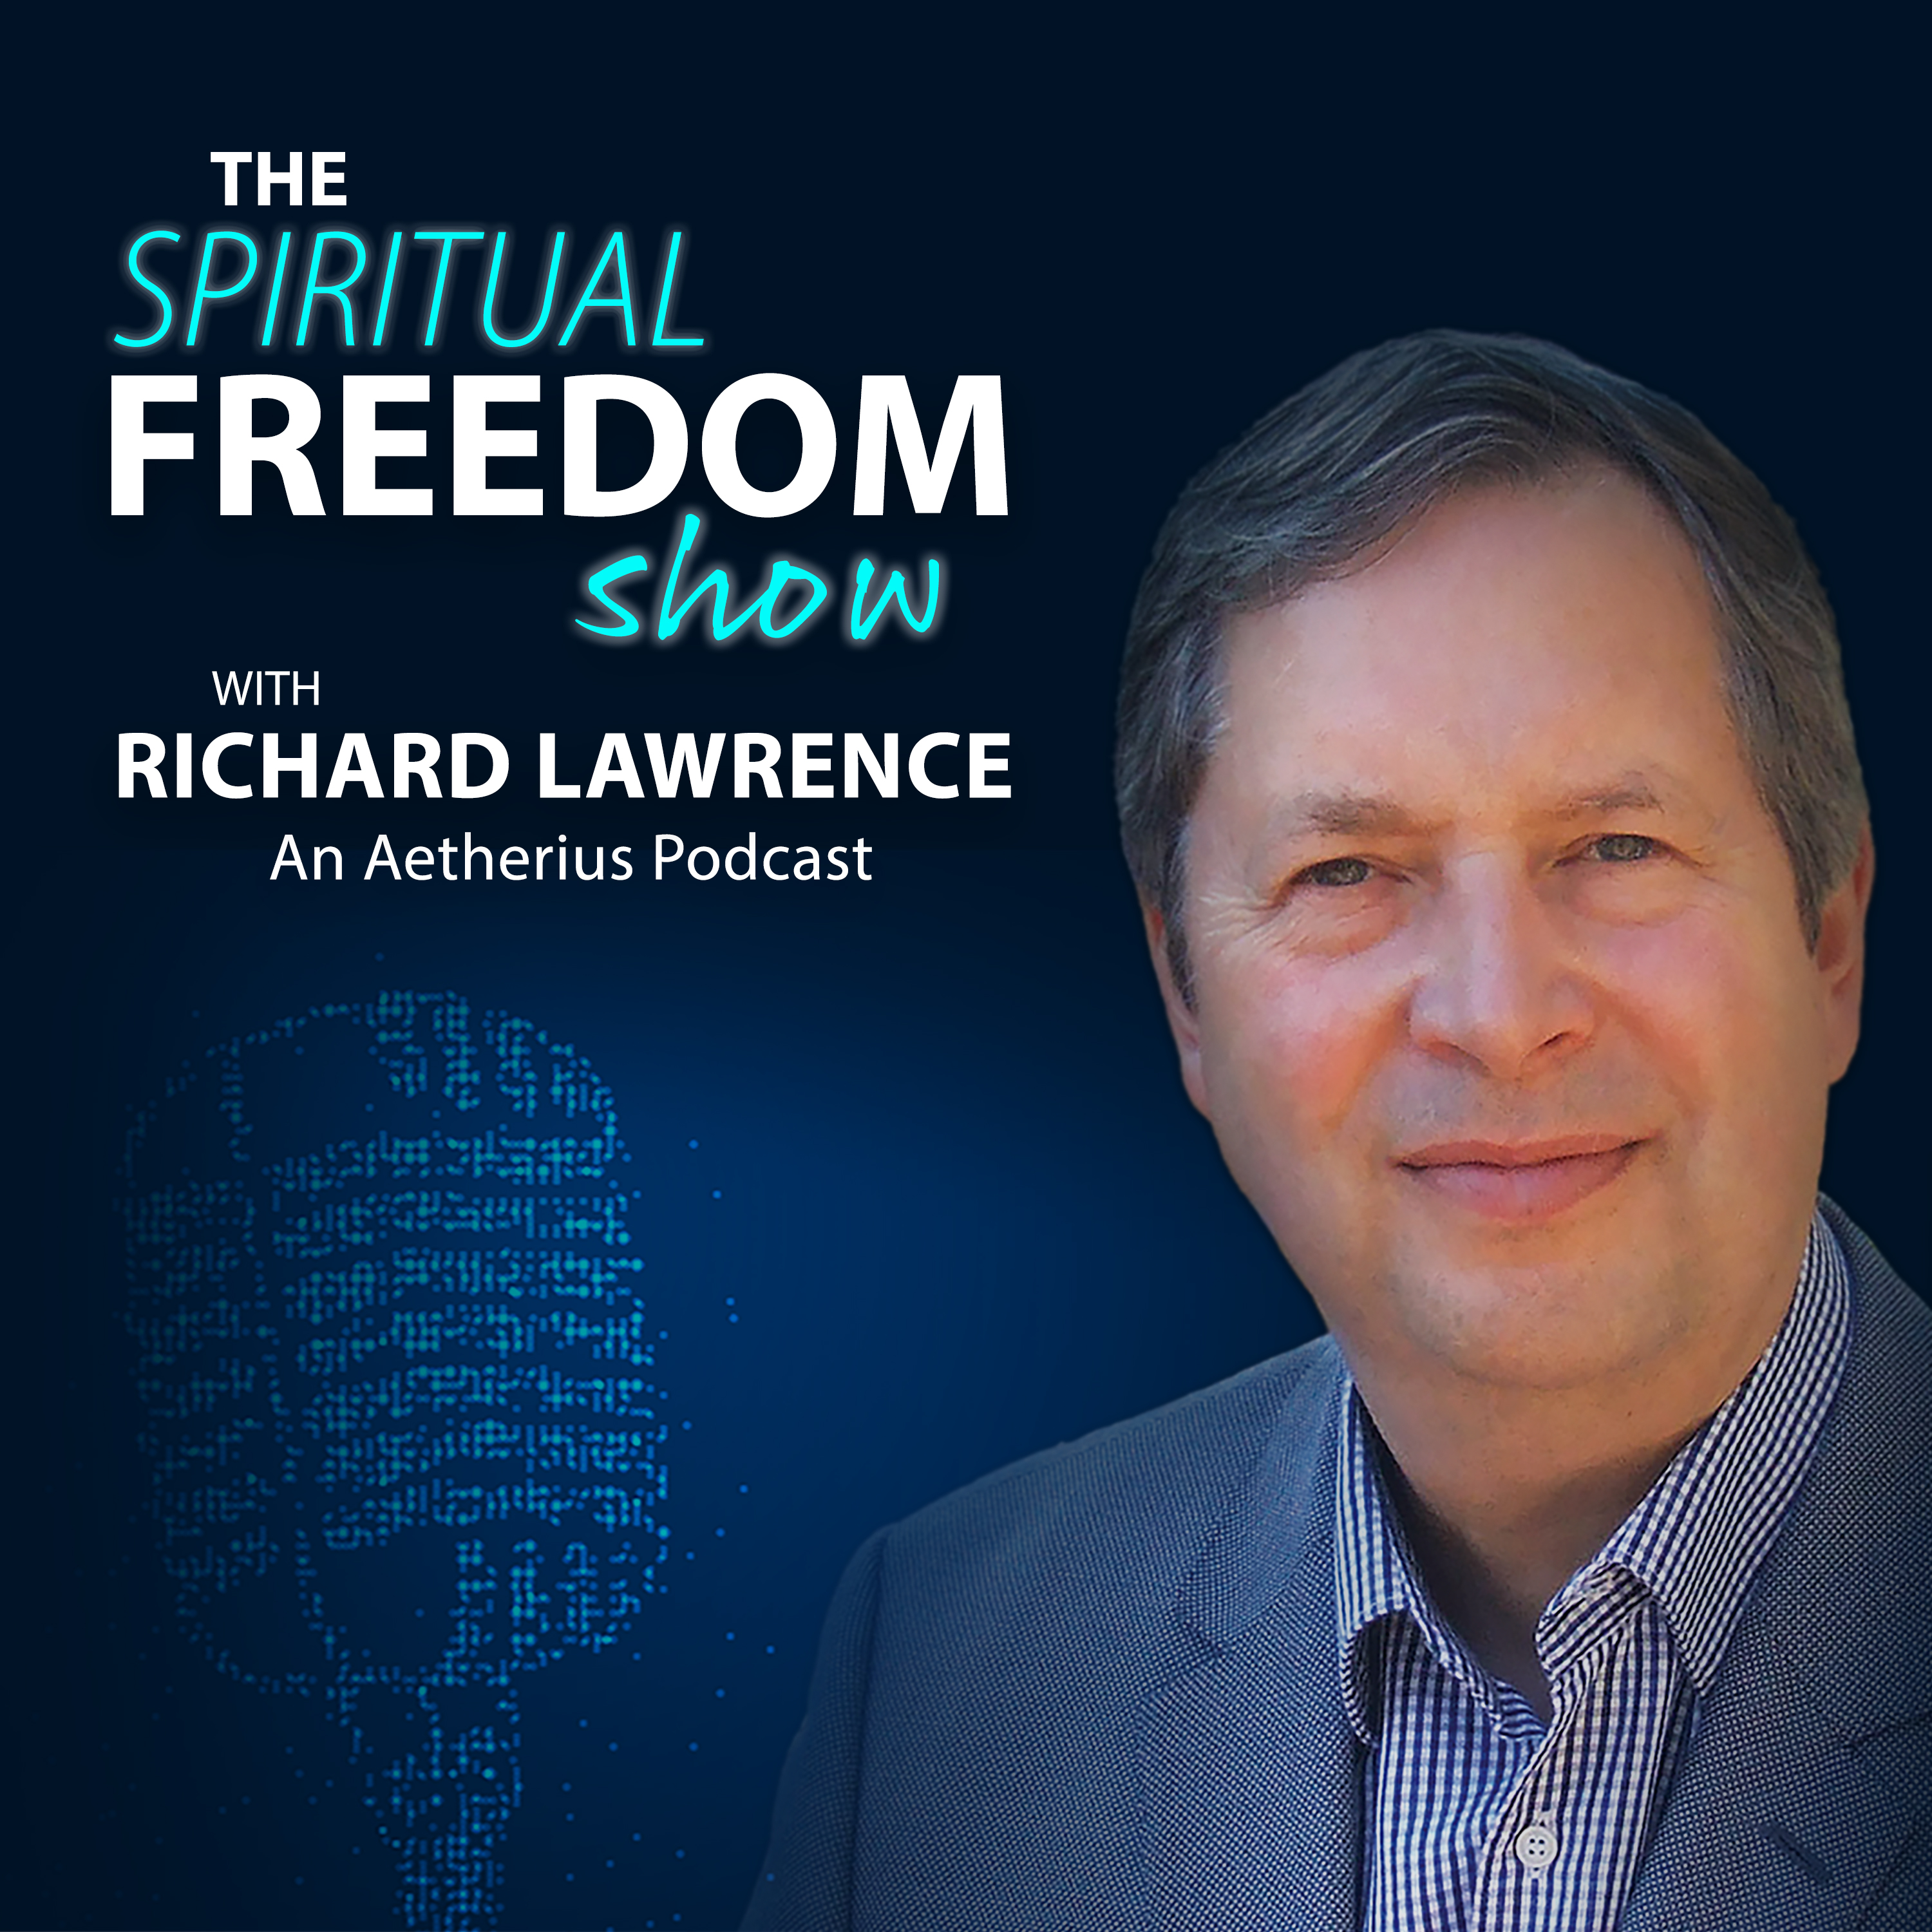 The Spiritual Freedom Show With Richard Lawrence